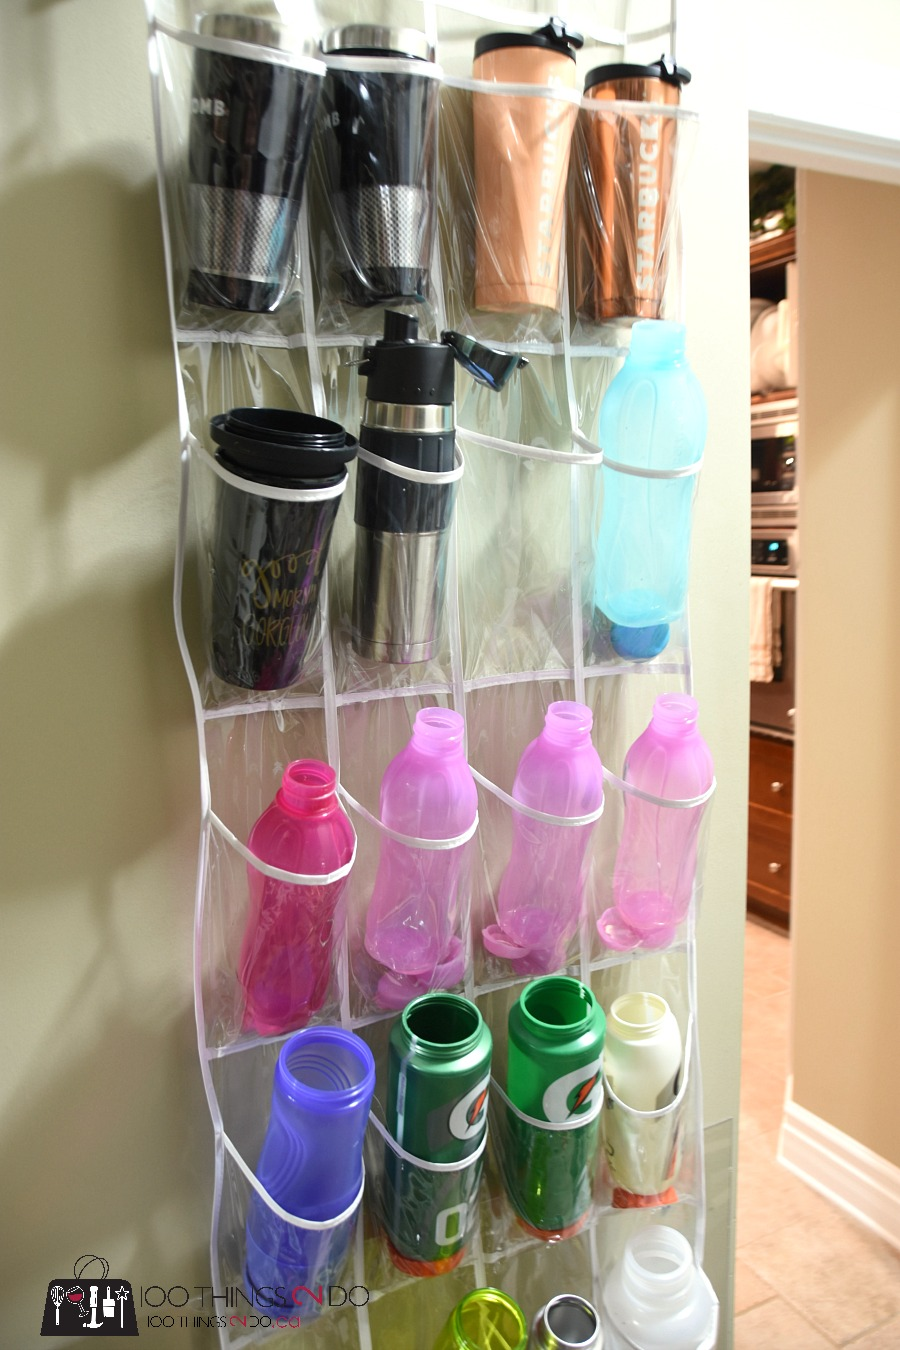 Water bottle storage, organizing water bottles, storing sports bottles, storing water bottles, waterbottle